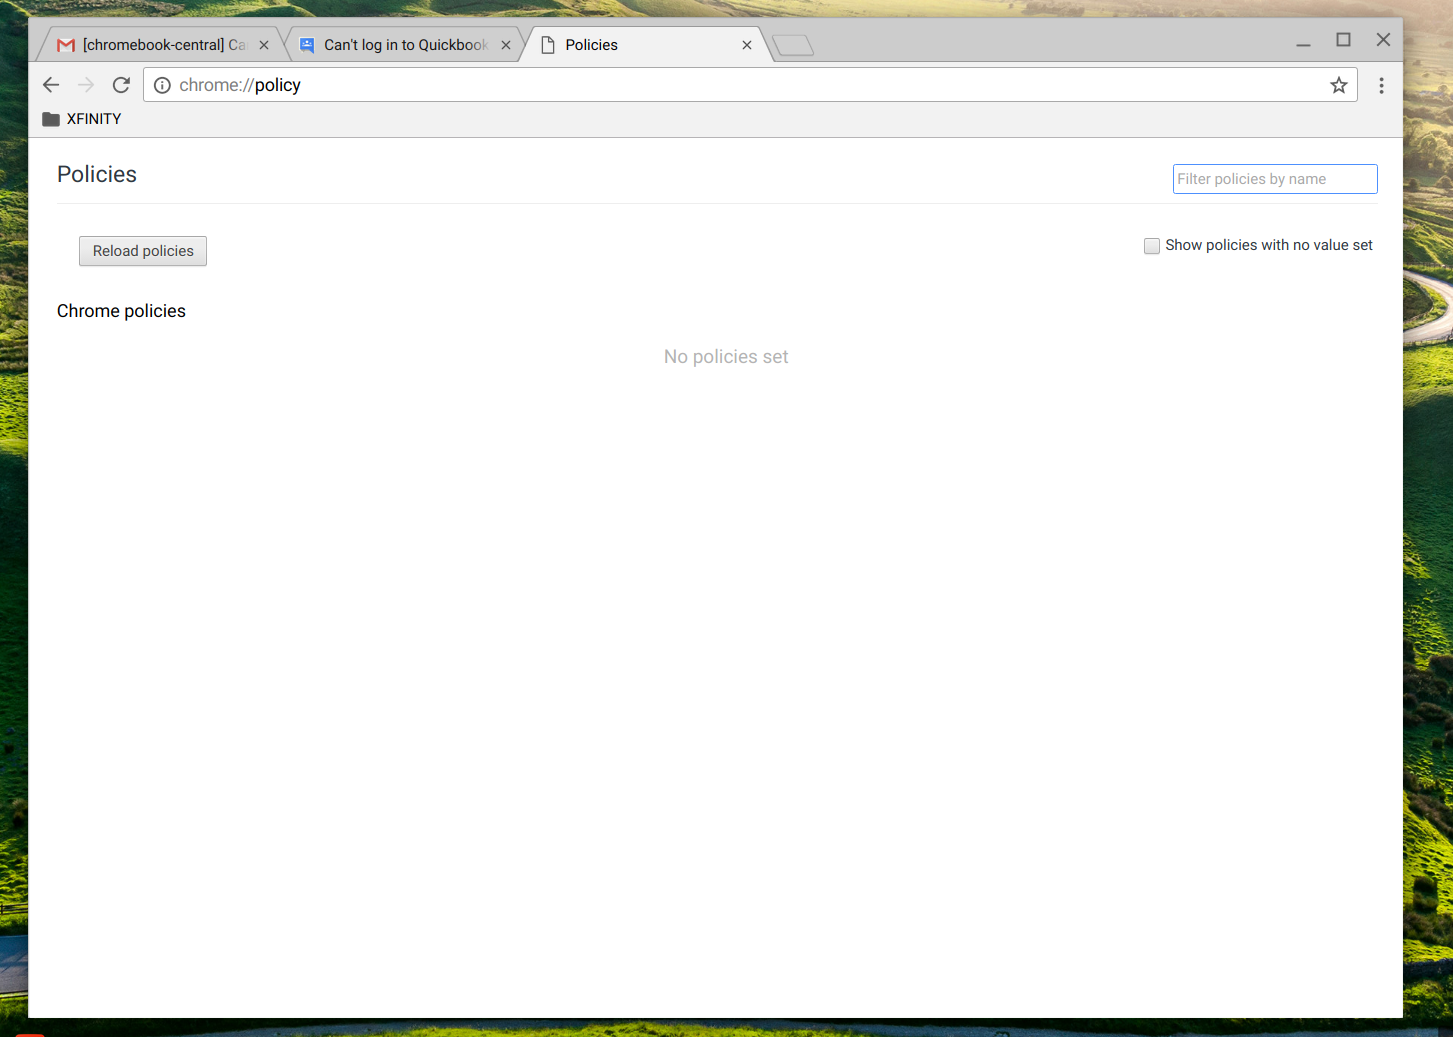 Can't log in to Quickbooks Online on Chromebook - Chromebook Help